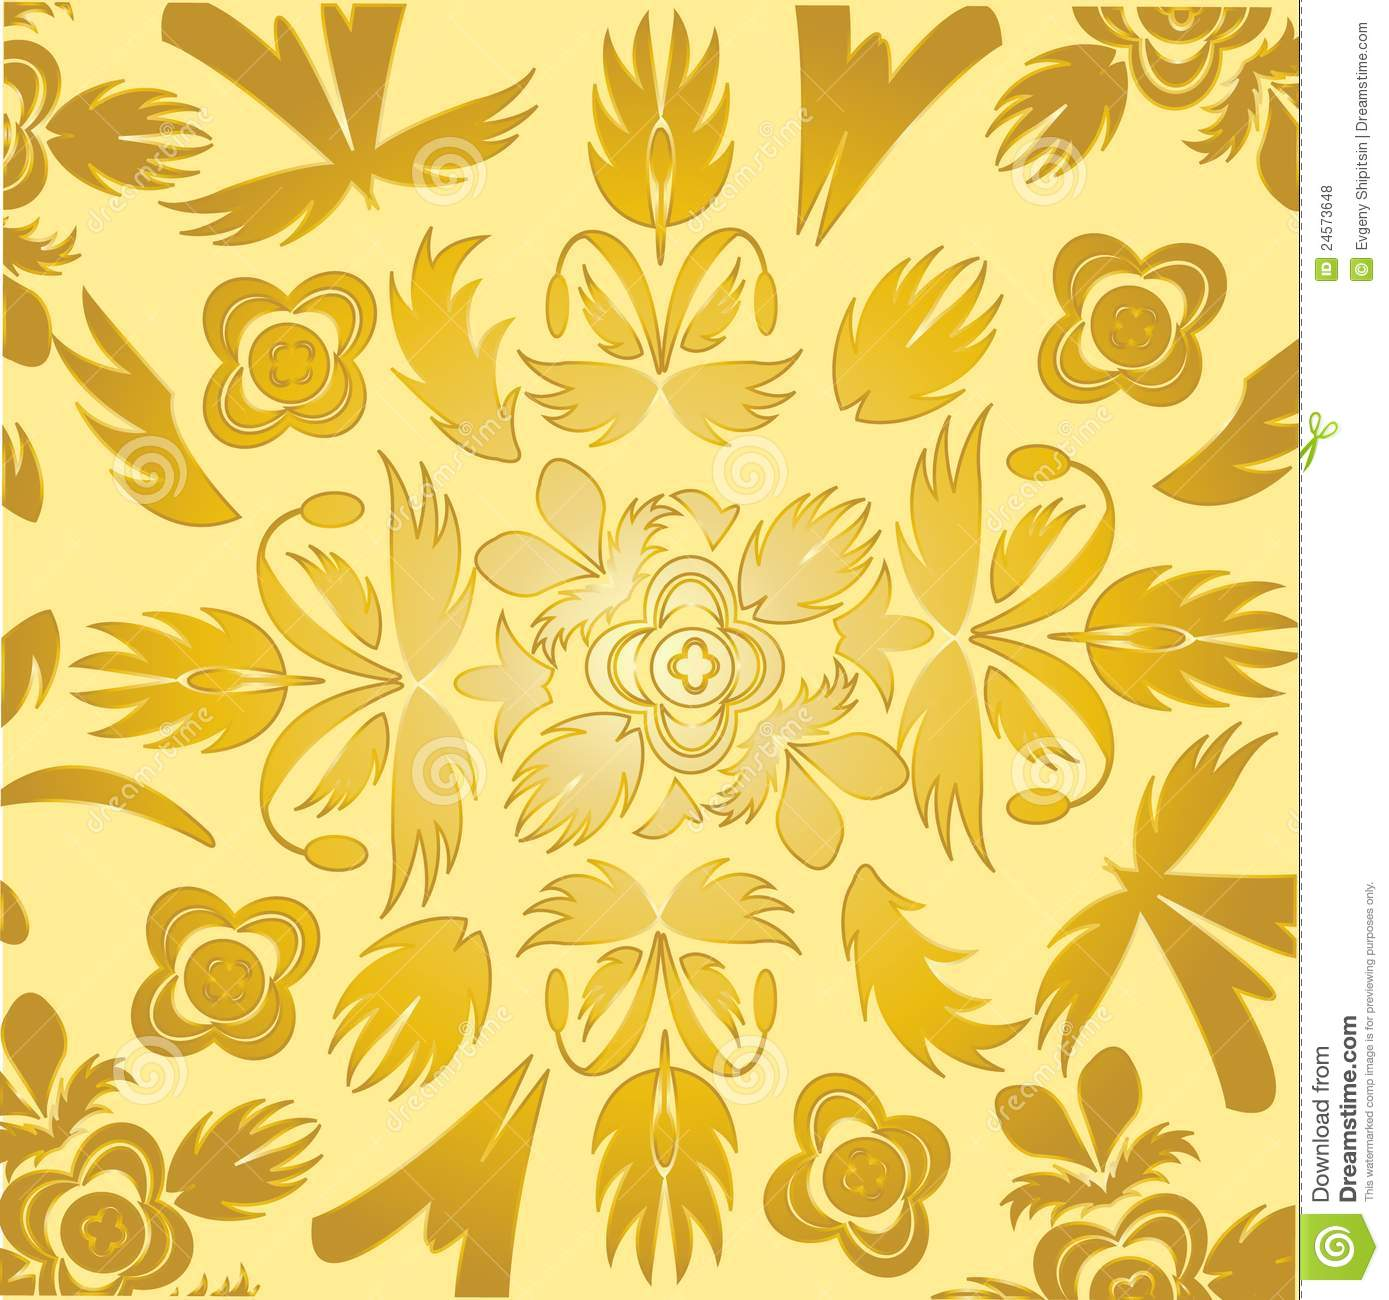 Papel pintado decorativo del color dorado ilustraci n del for Papel pintado dorado